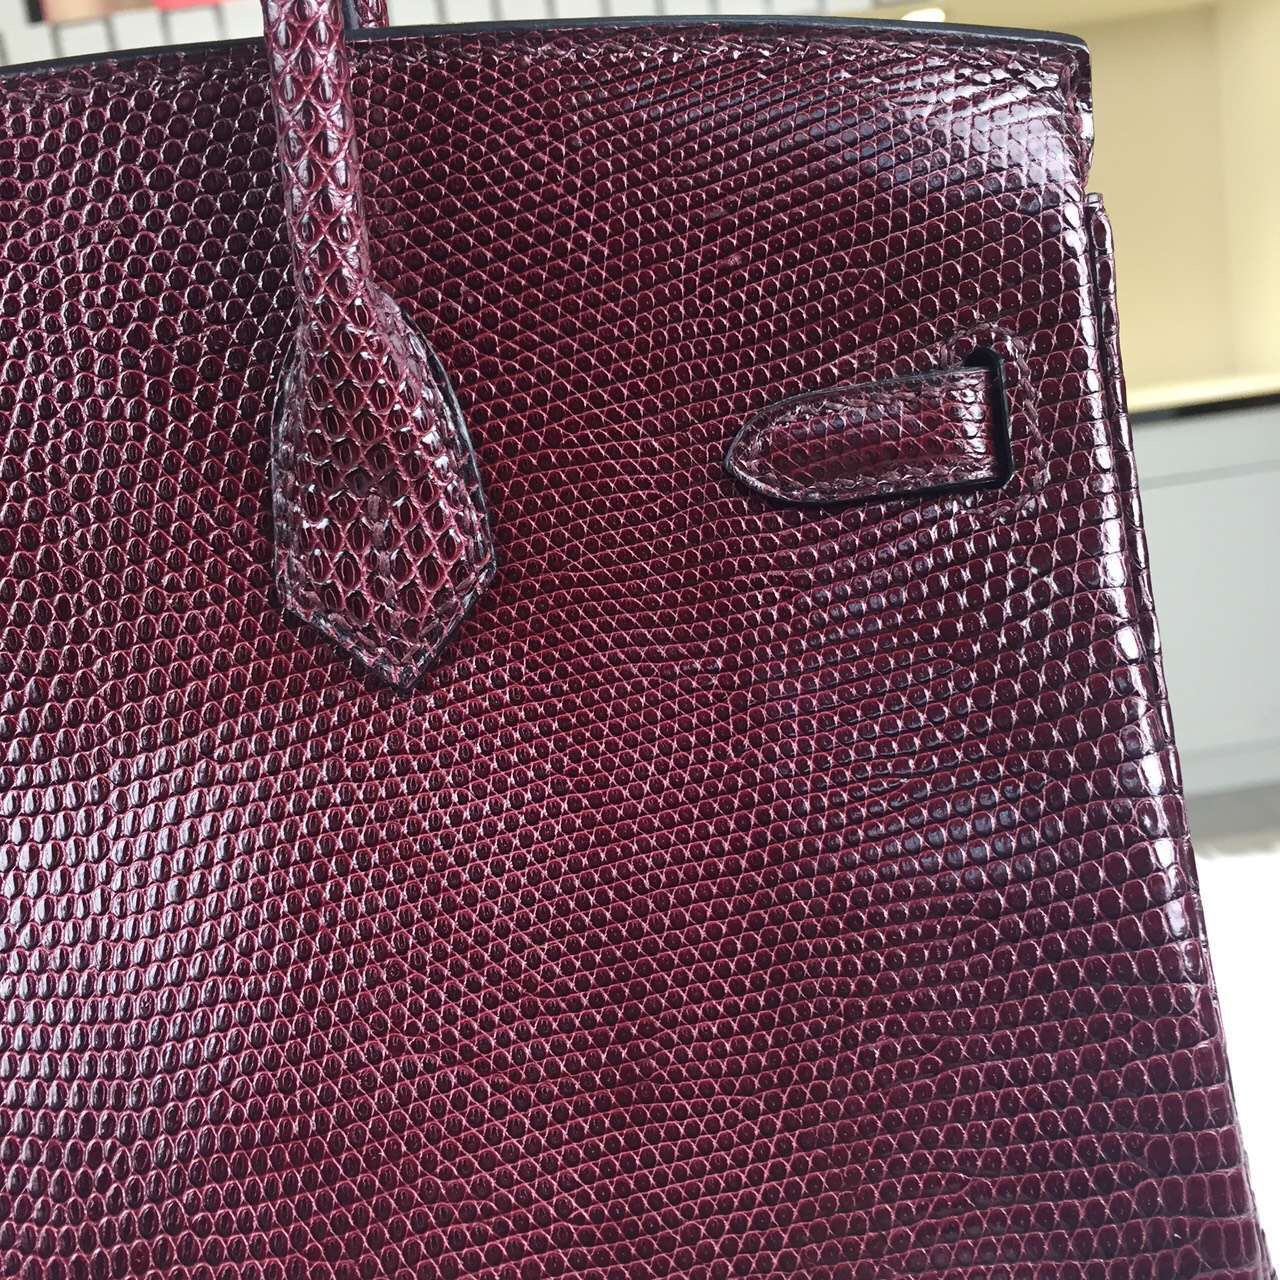 High Quality Hermes Birkin25cm Bordeaux Lizard Skin Leather Gold Hardware